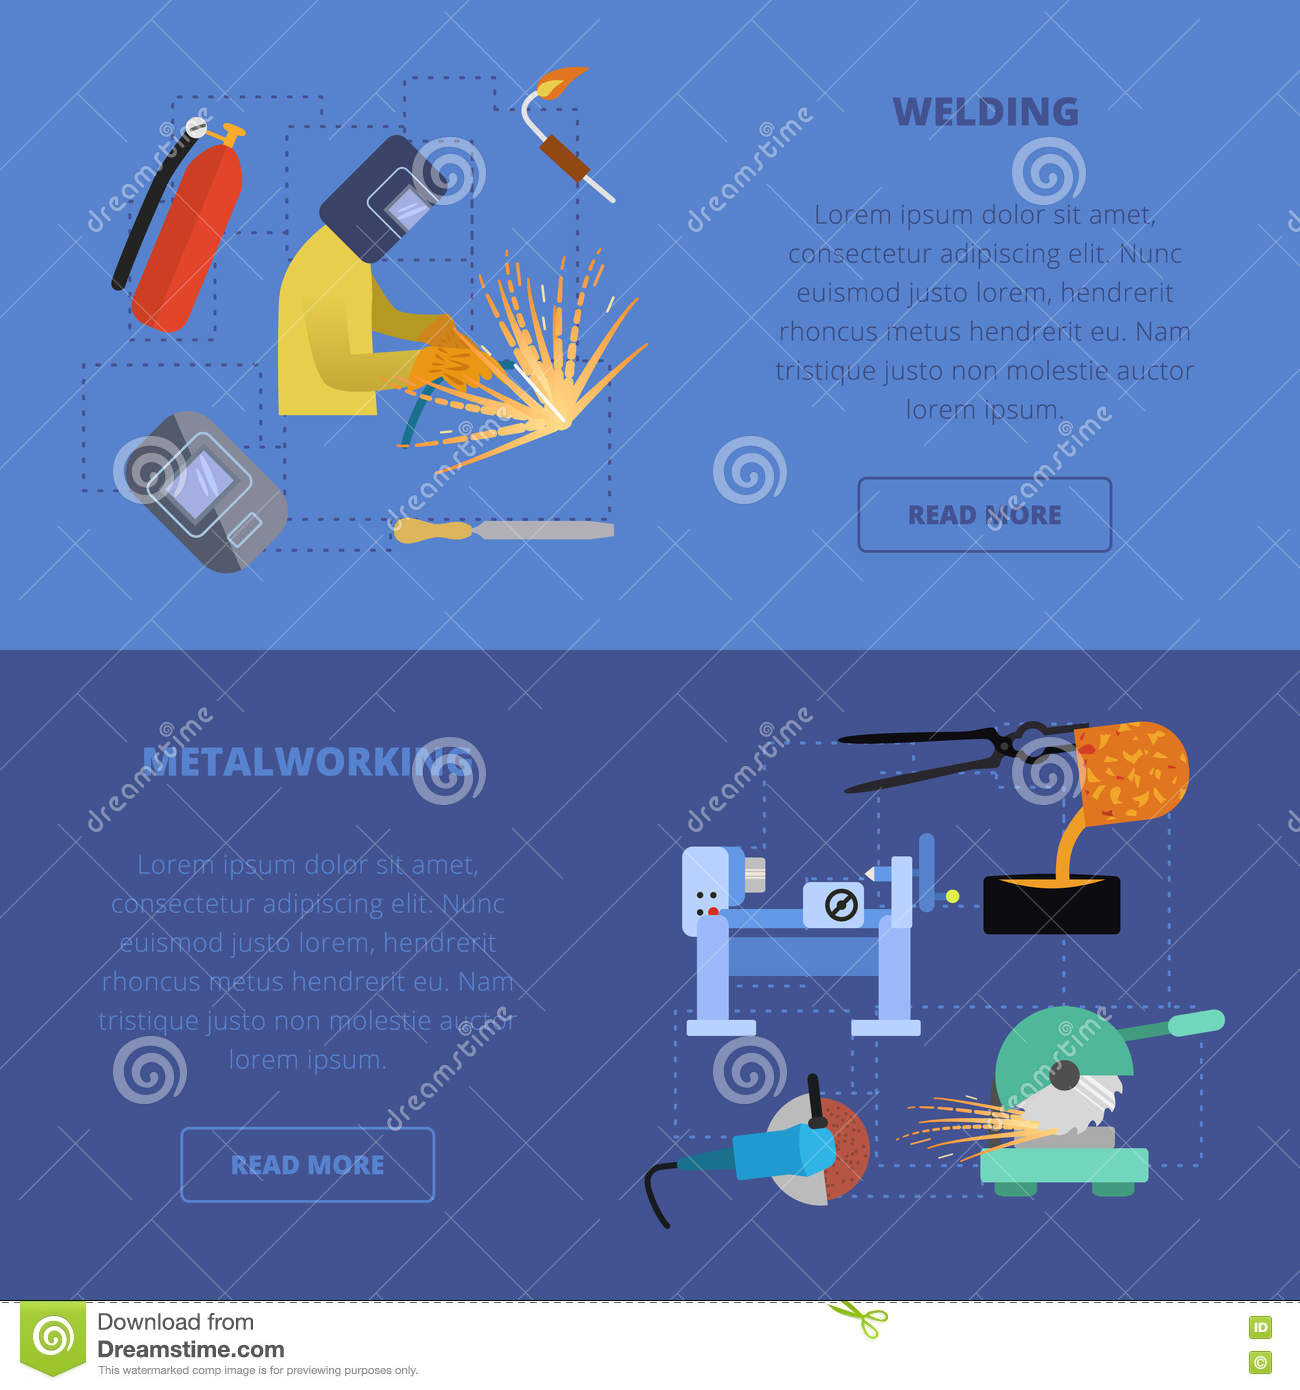 Vector Metalworking Concept Stock Illustration Of How To Read A Welding Diagram Icons Metal Lathe Work Cutting Grinding Casting